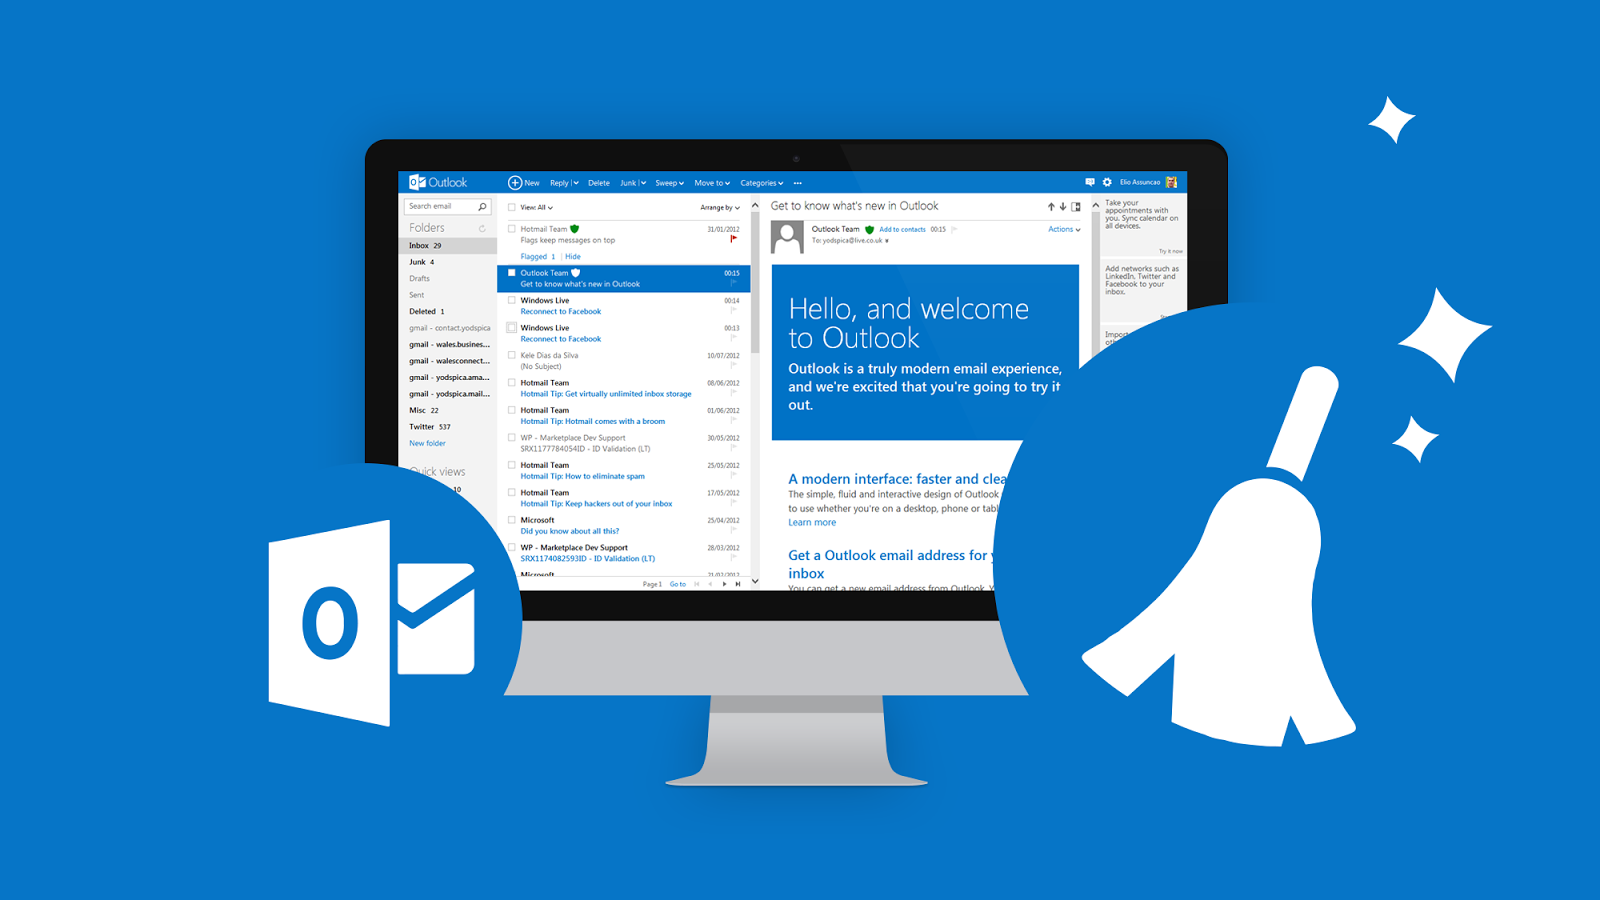 Microsoft Outlook Power Tools: Rules, Quick Steps, Macros